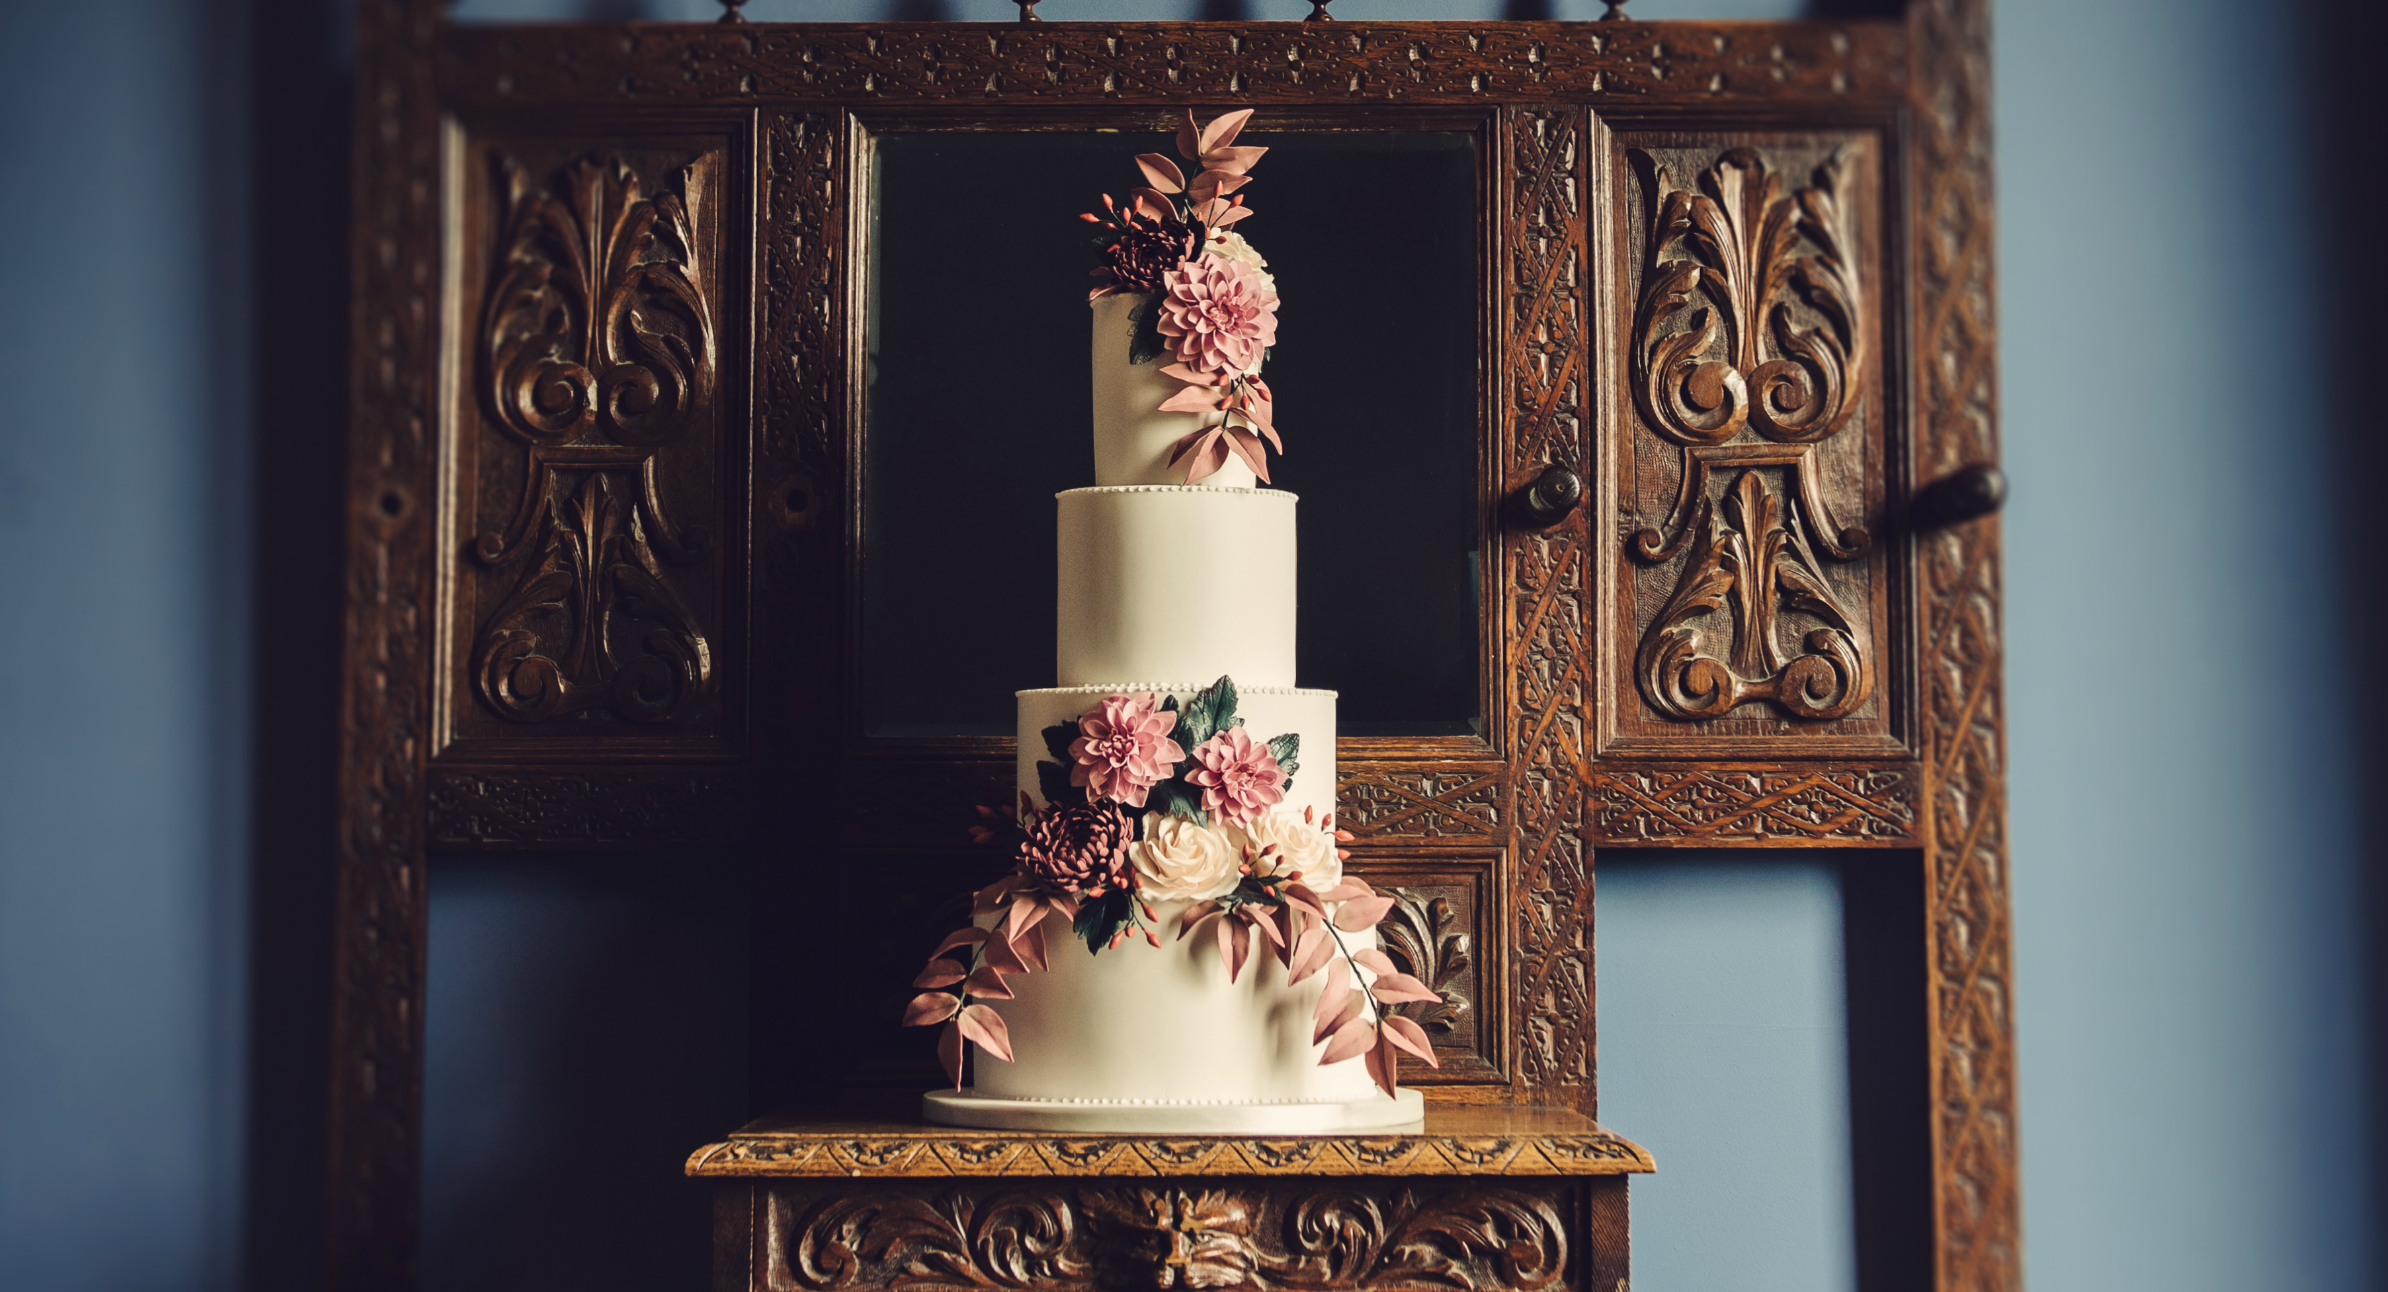 JellyCake Autumn Pinks Wedding Cake in Hall